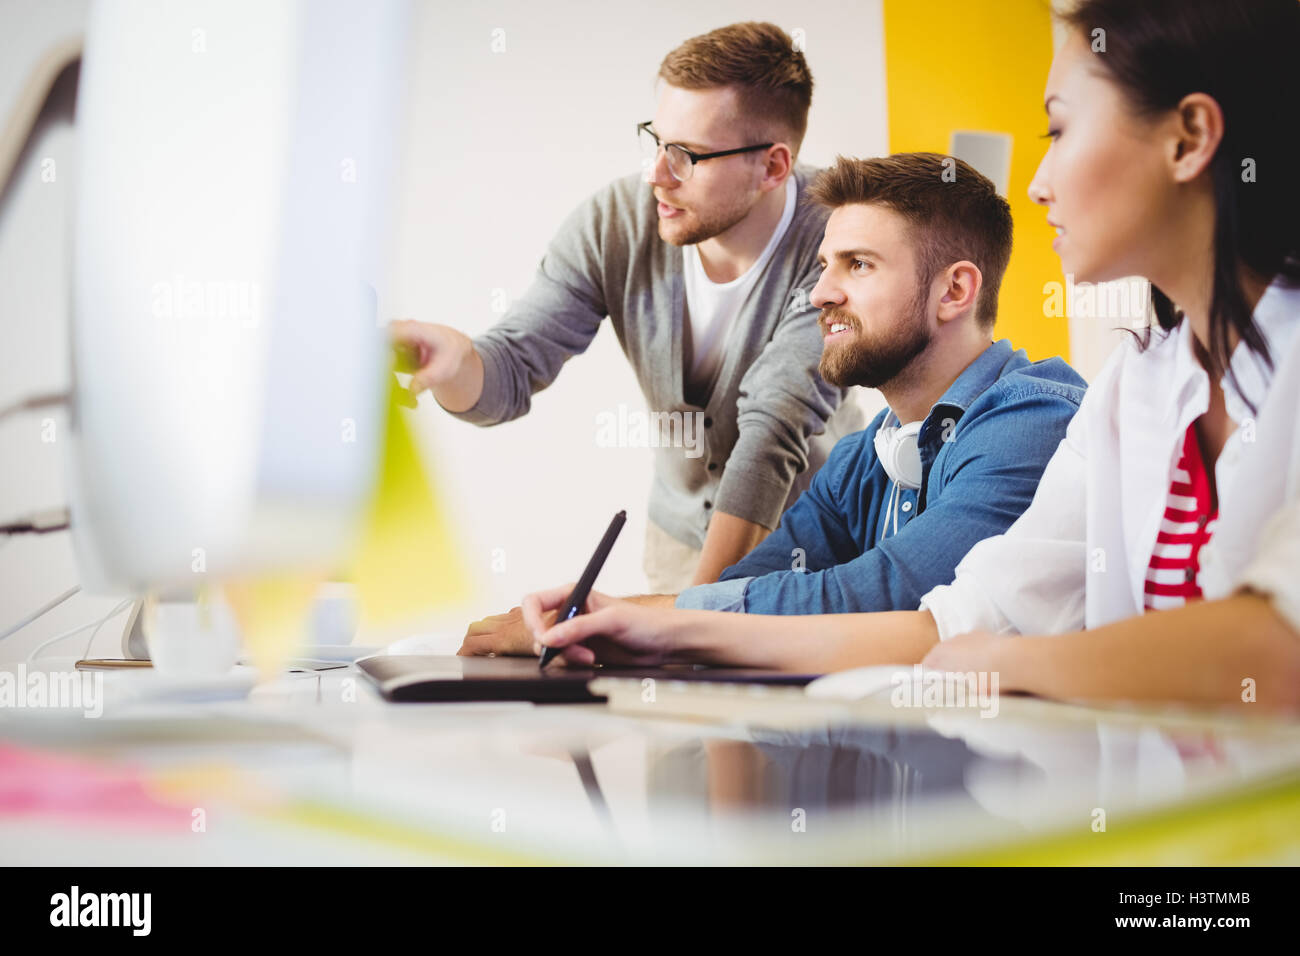 Executive pointing at computer monitor to colleagues in creative office - Stock Image